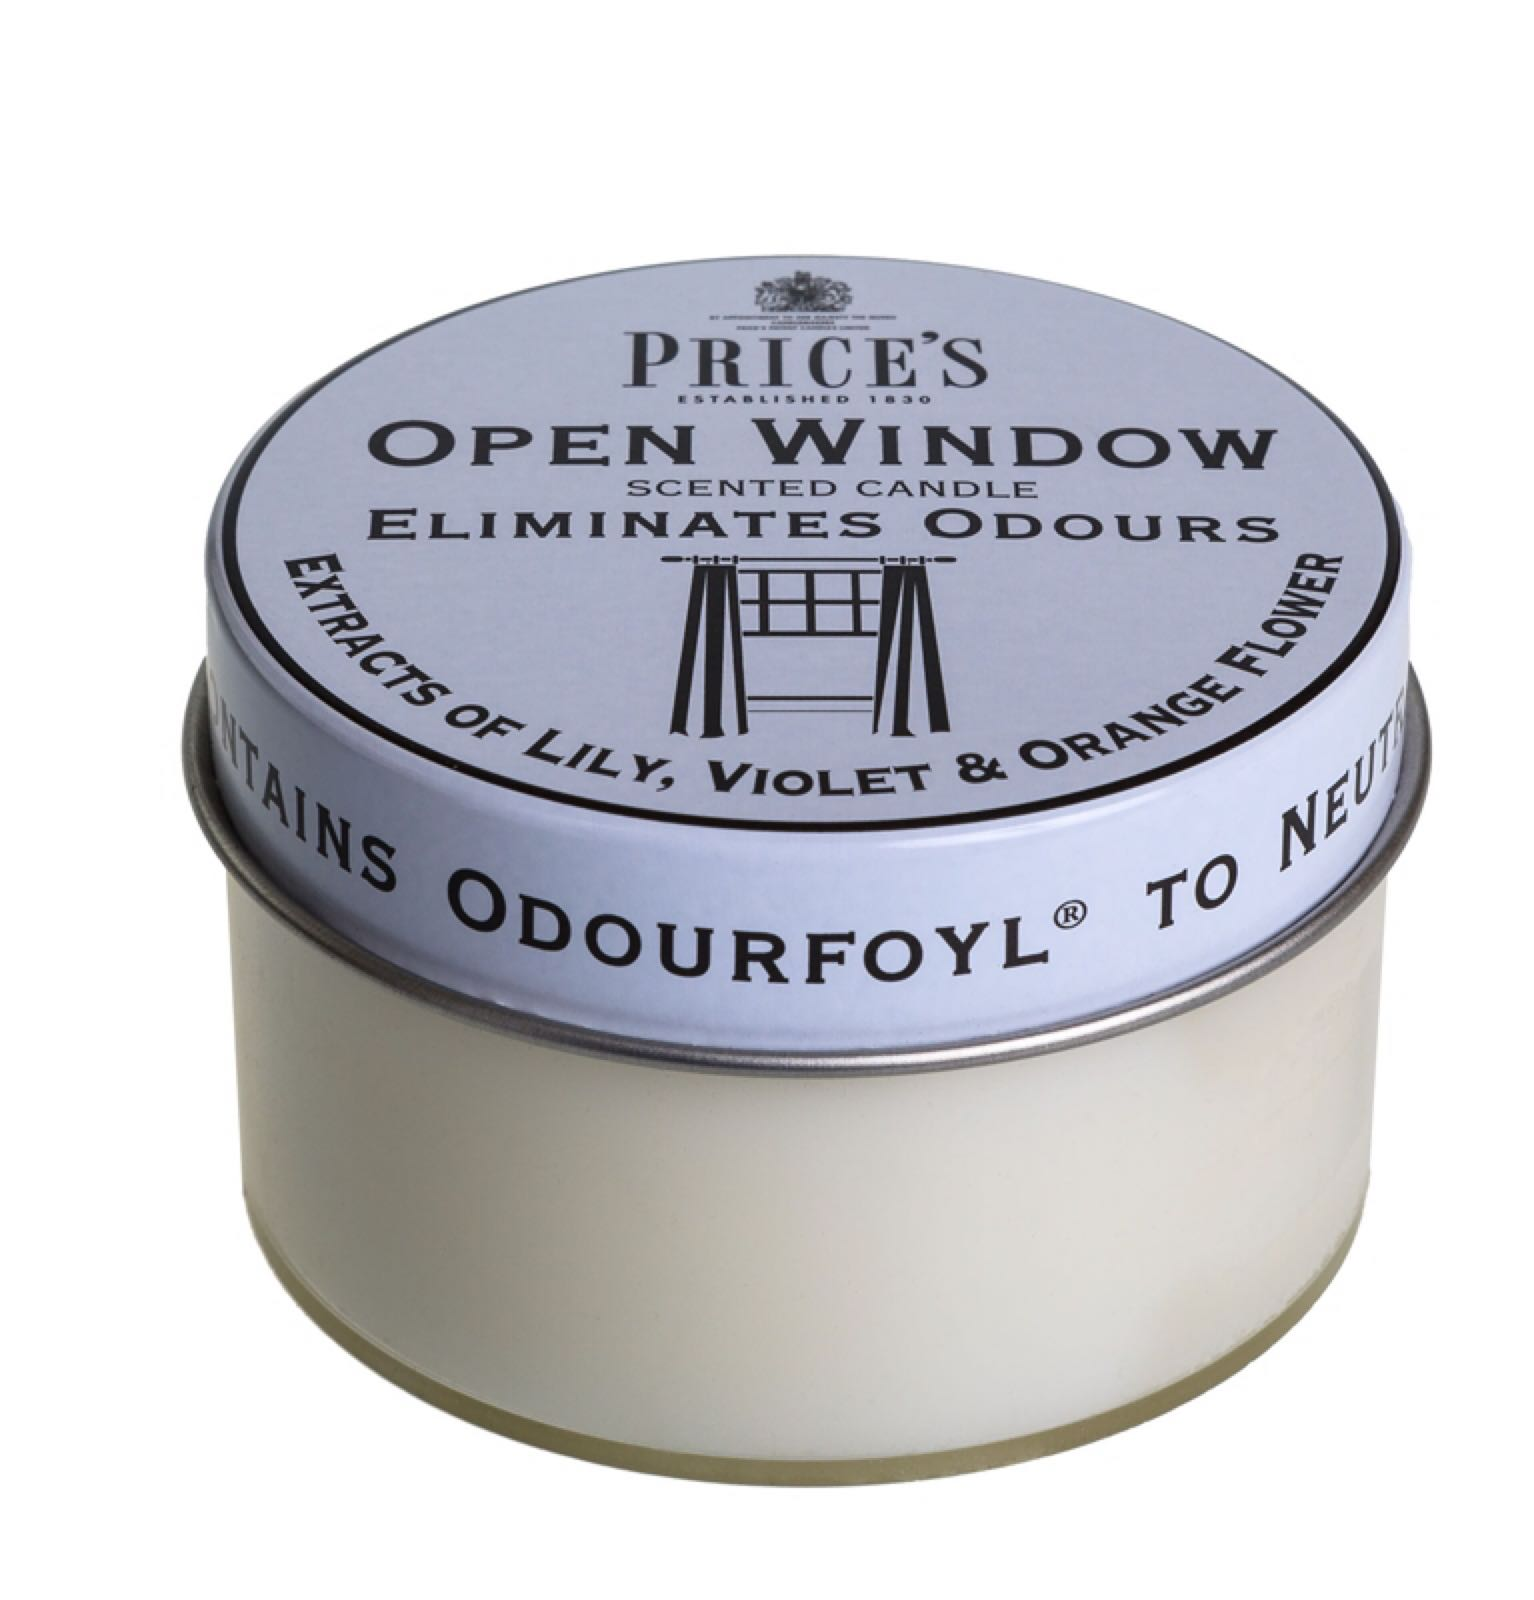 'Open Window' Candle Pot (Was £4.00)